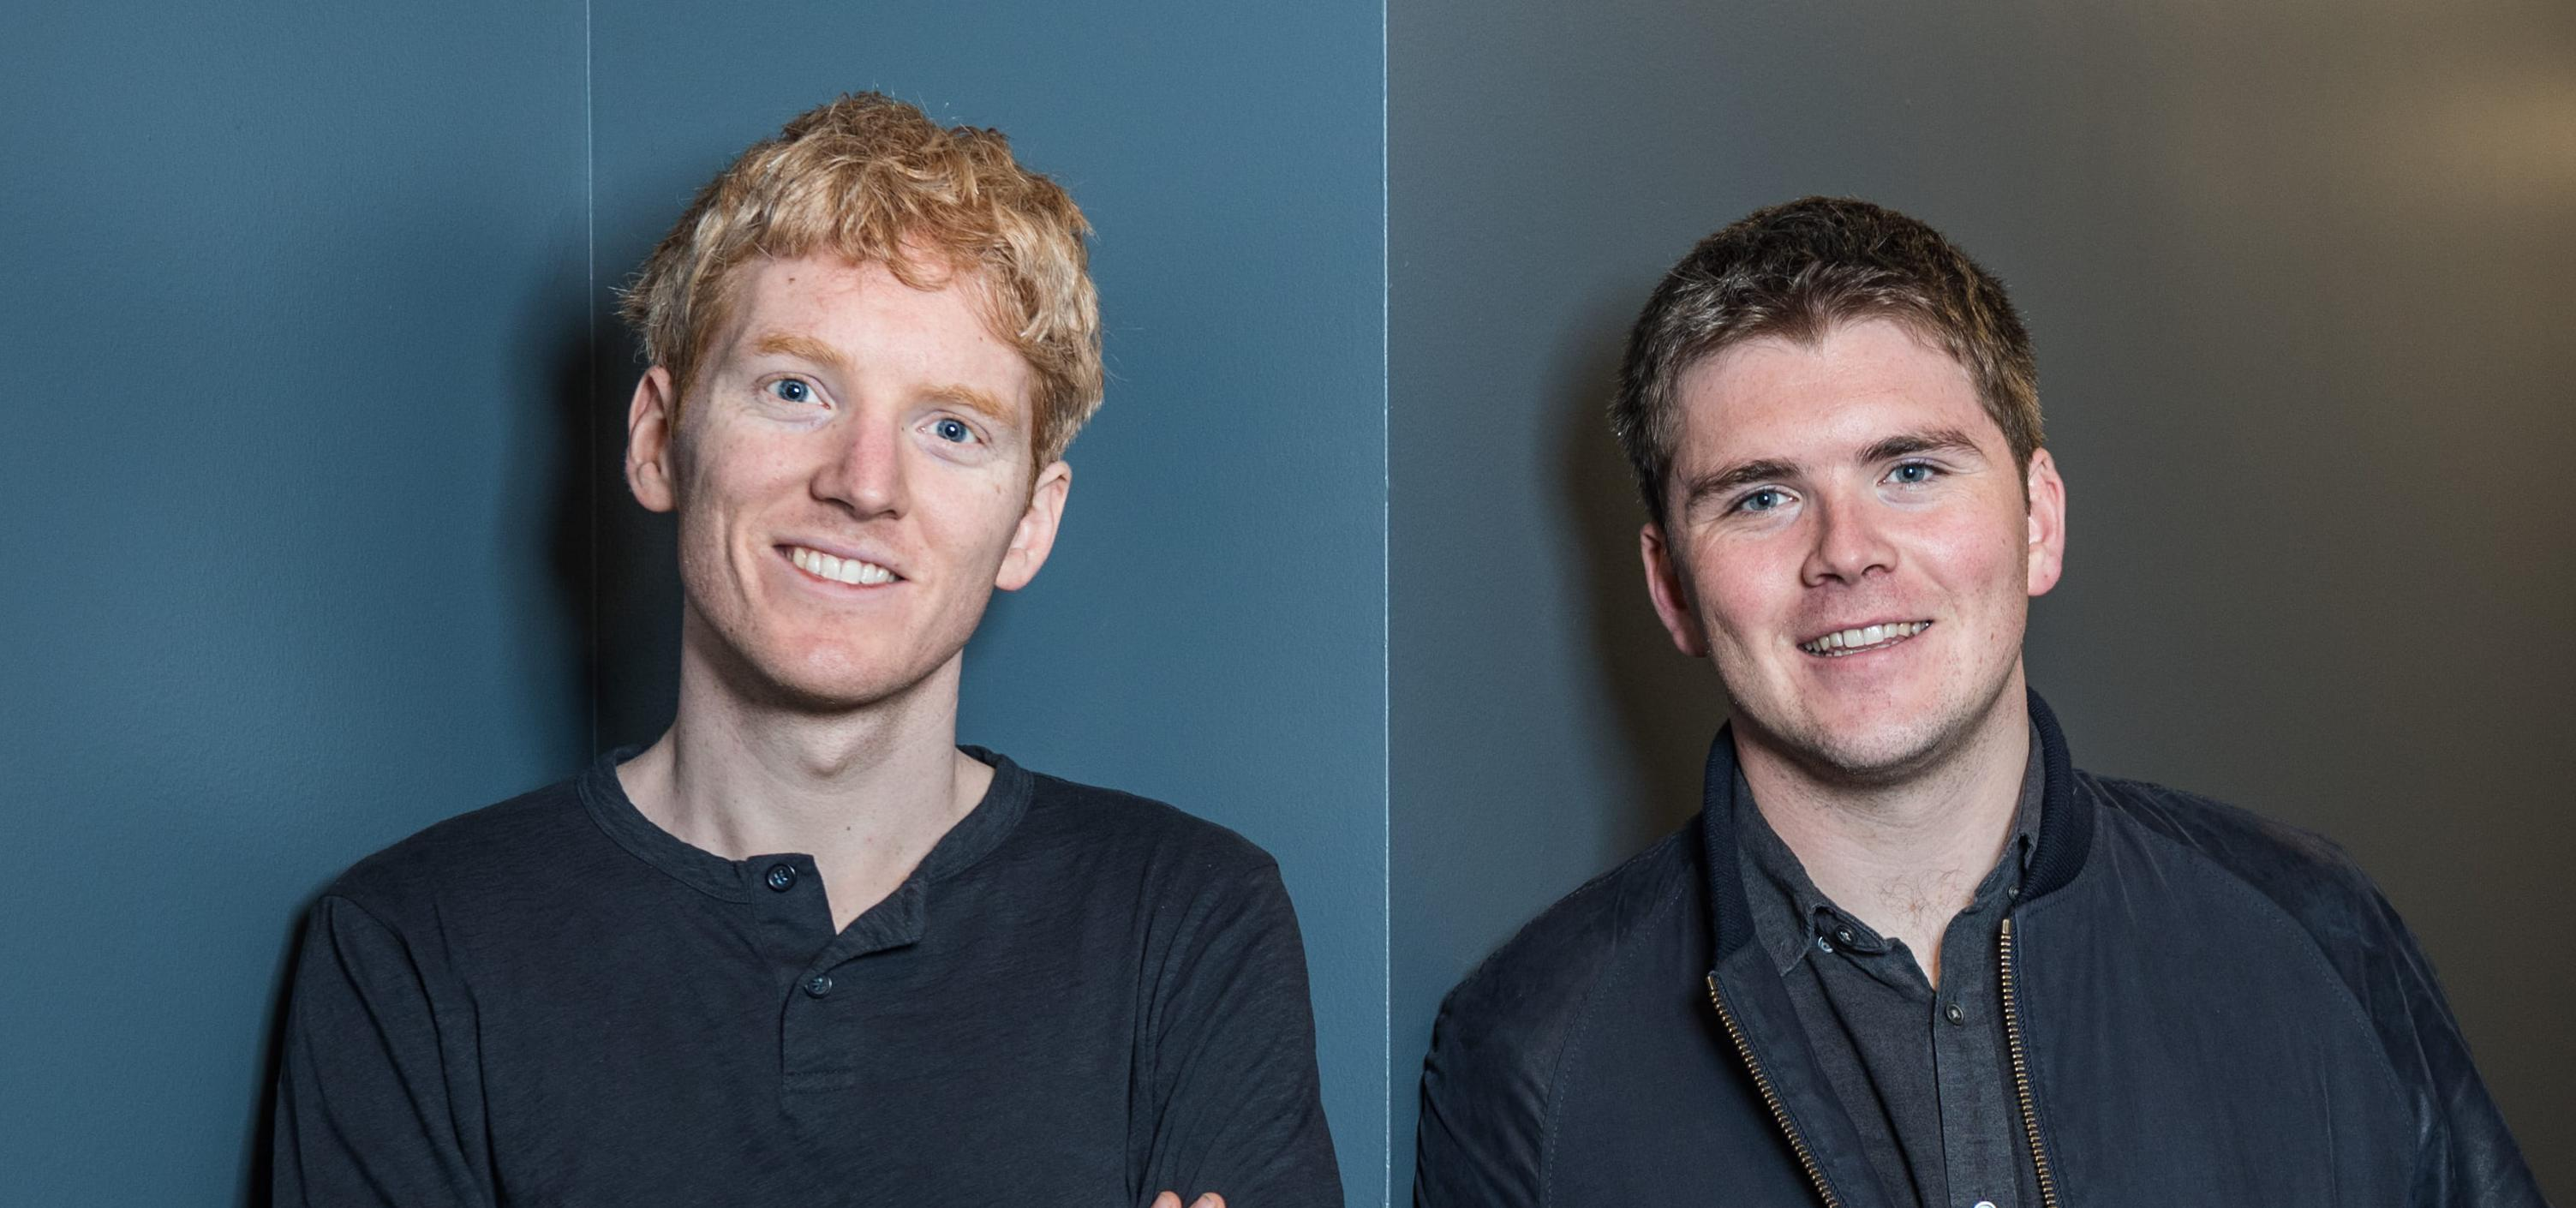 Stripe CEO Patrick Collison and president John Collison. Stripe is the most valuable private fintech company in America, and the second-most valuable startup in the world.